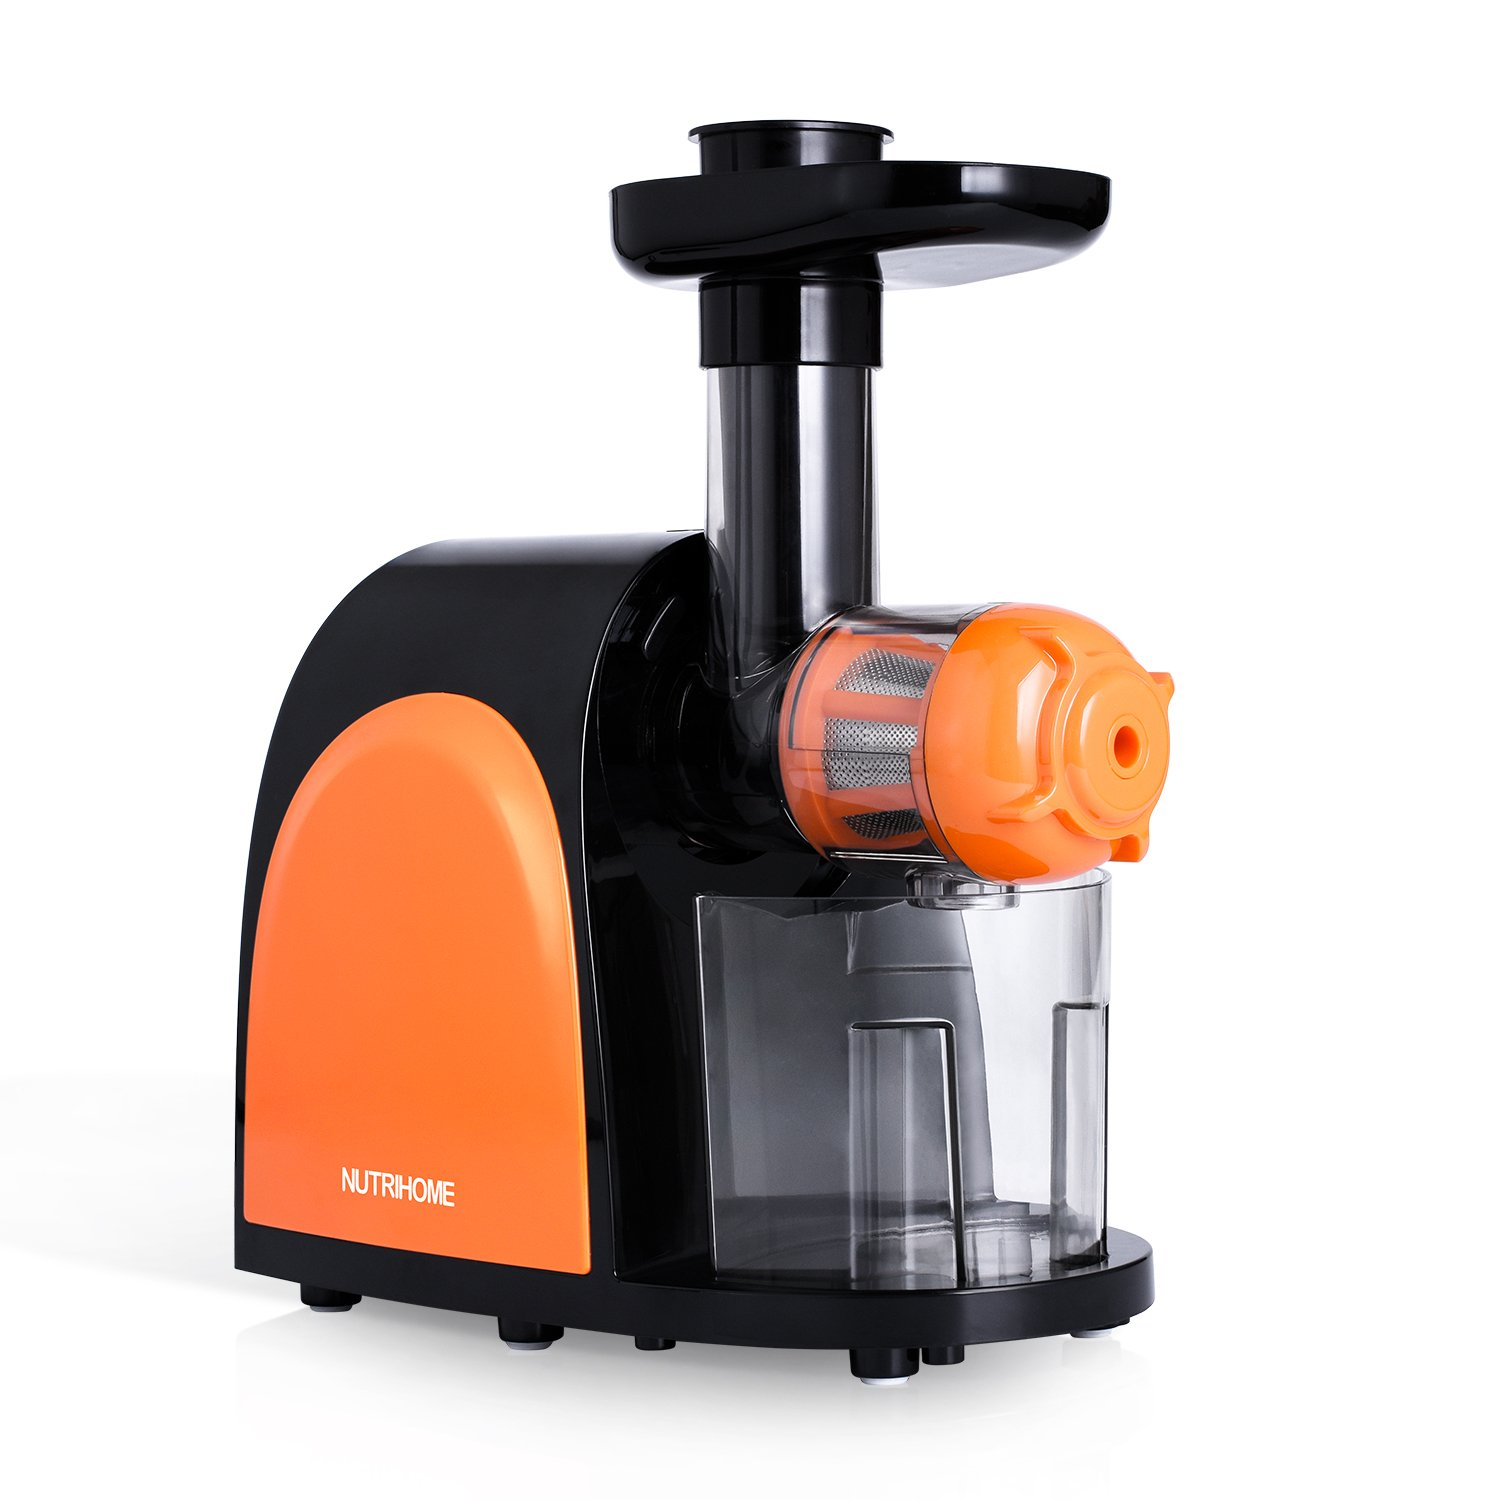 The Best Slow Juicer Machine : Best Masticating Juicer 2018, Reviews and Buying Guide